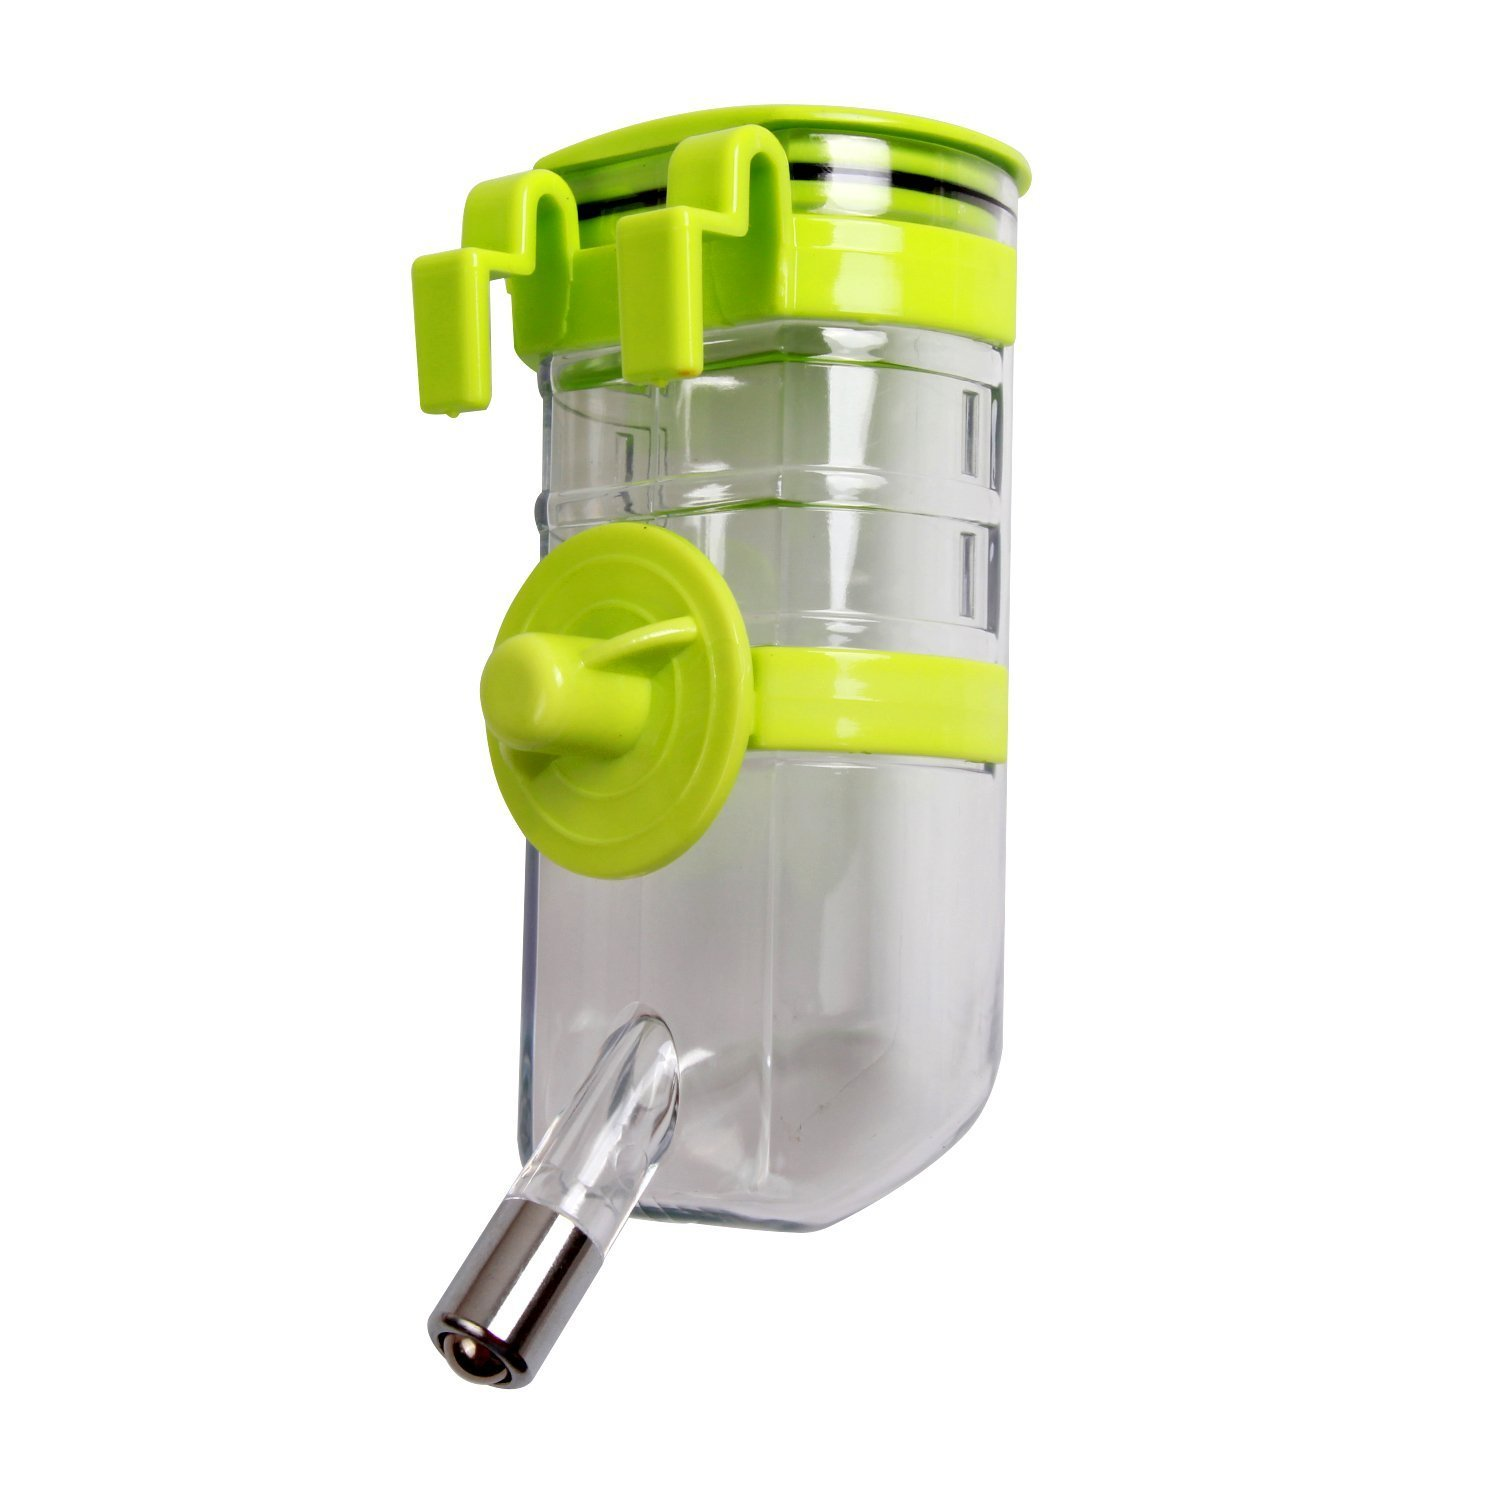 BXT Automatic Pet Water Bottle for Dogs Cats Rabbits Ferrets, 13.5 oz Capacity Rear-filling Water Feeder Hanging No-Drip Water Drinking Holder- Keep Your Pet Hydrated (Green)